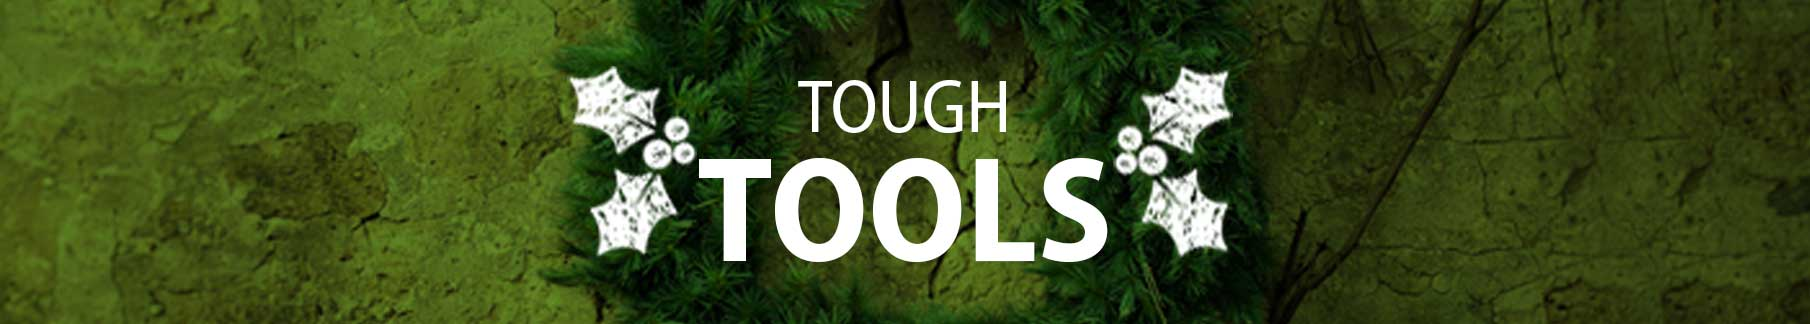 Tough Tools